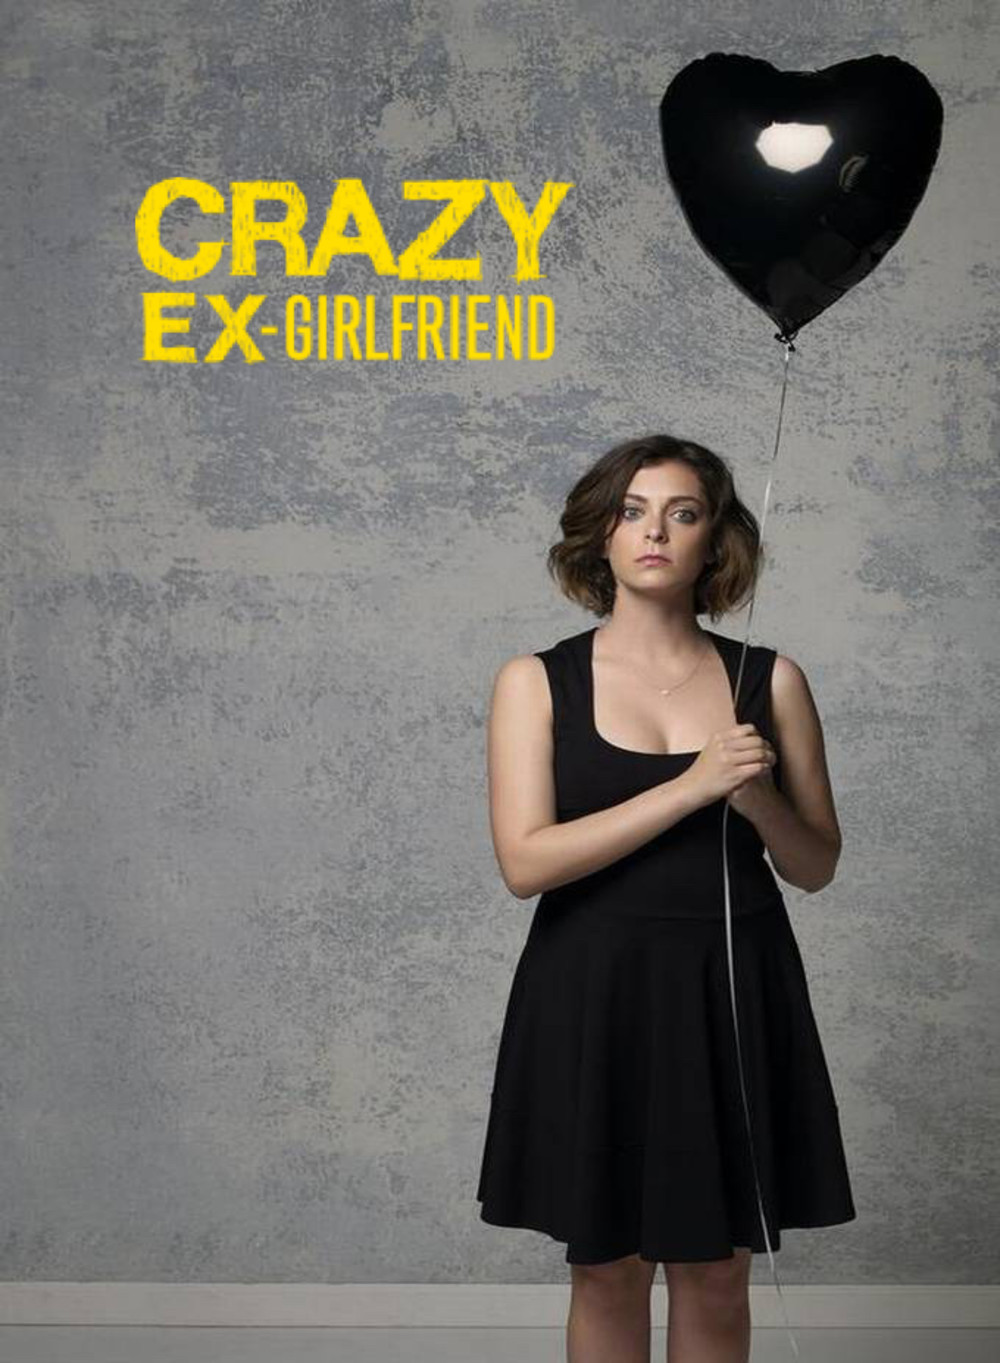 Crazy_Ex_Girlfriend série